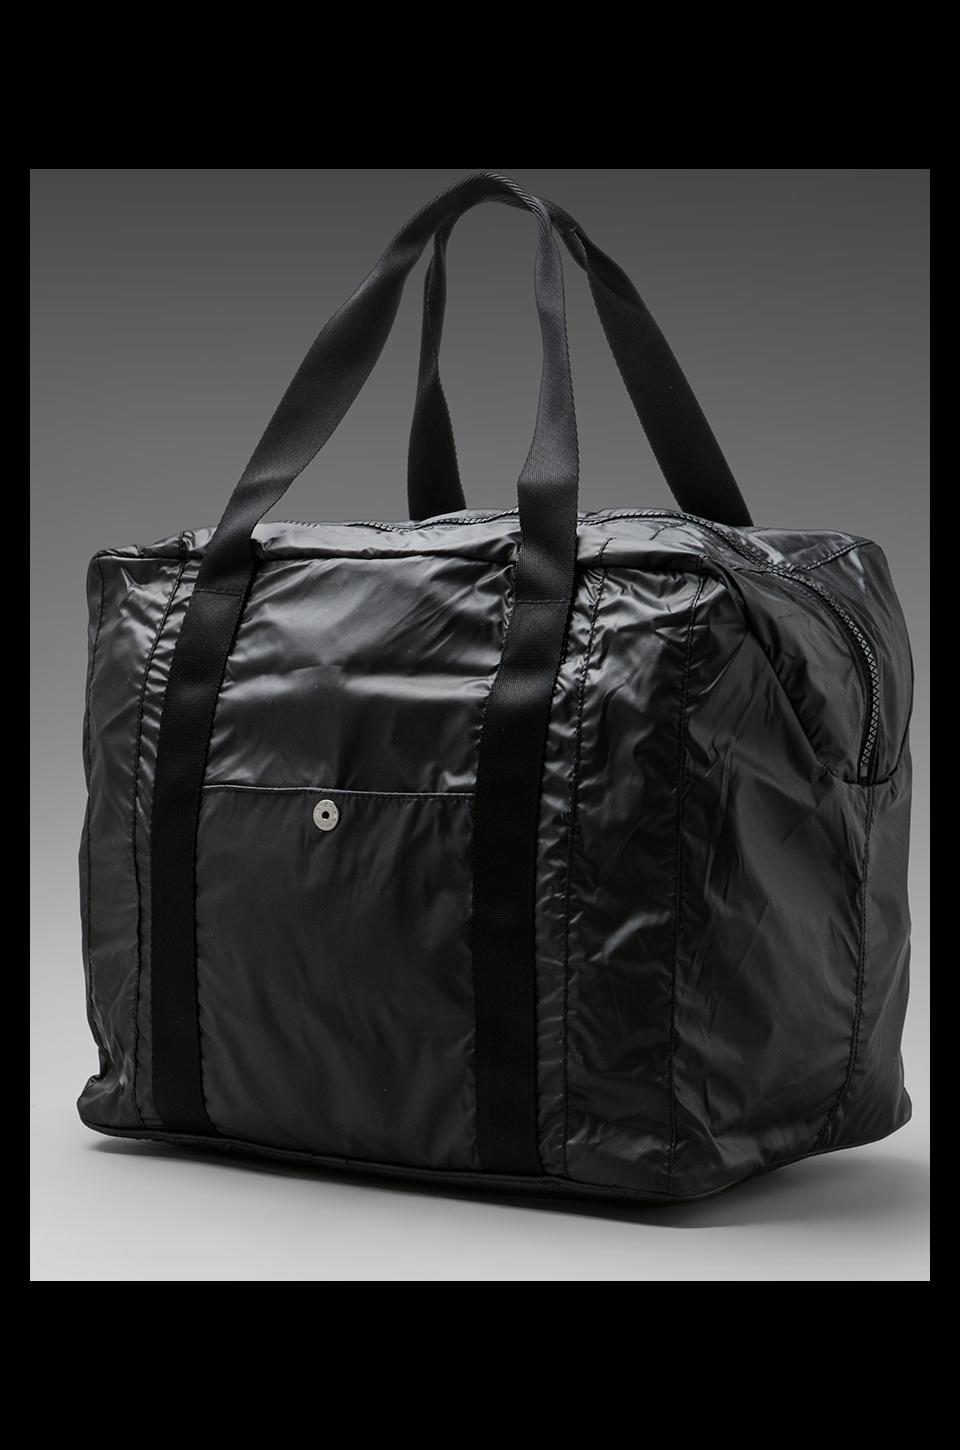 adidas by Stella McCartney Big Carry-On Bag in Black